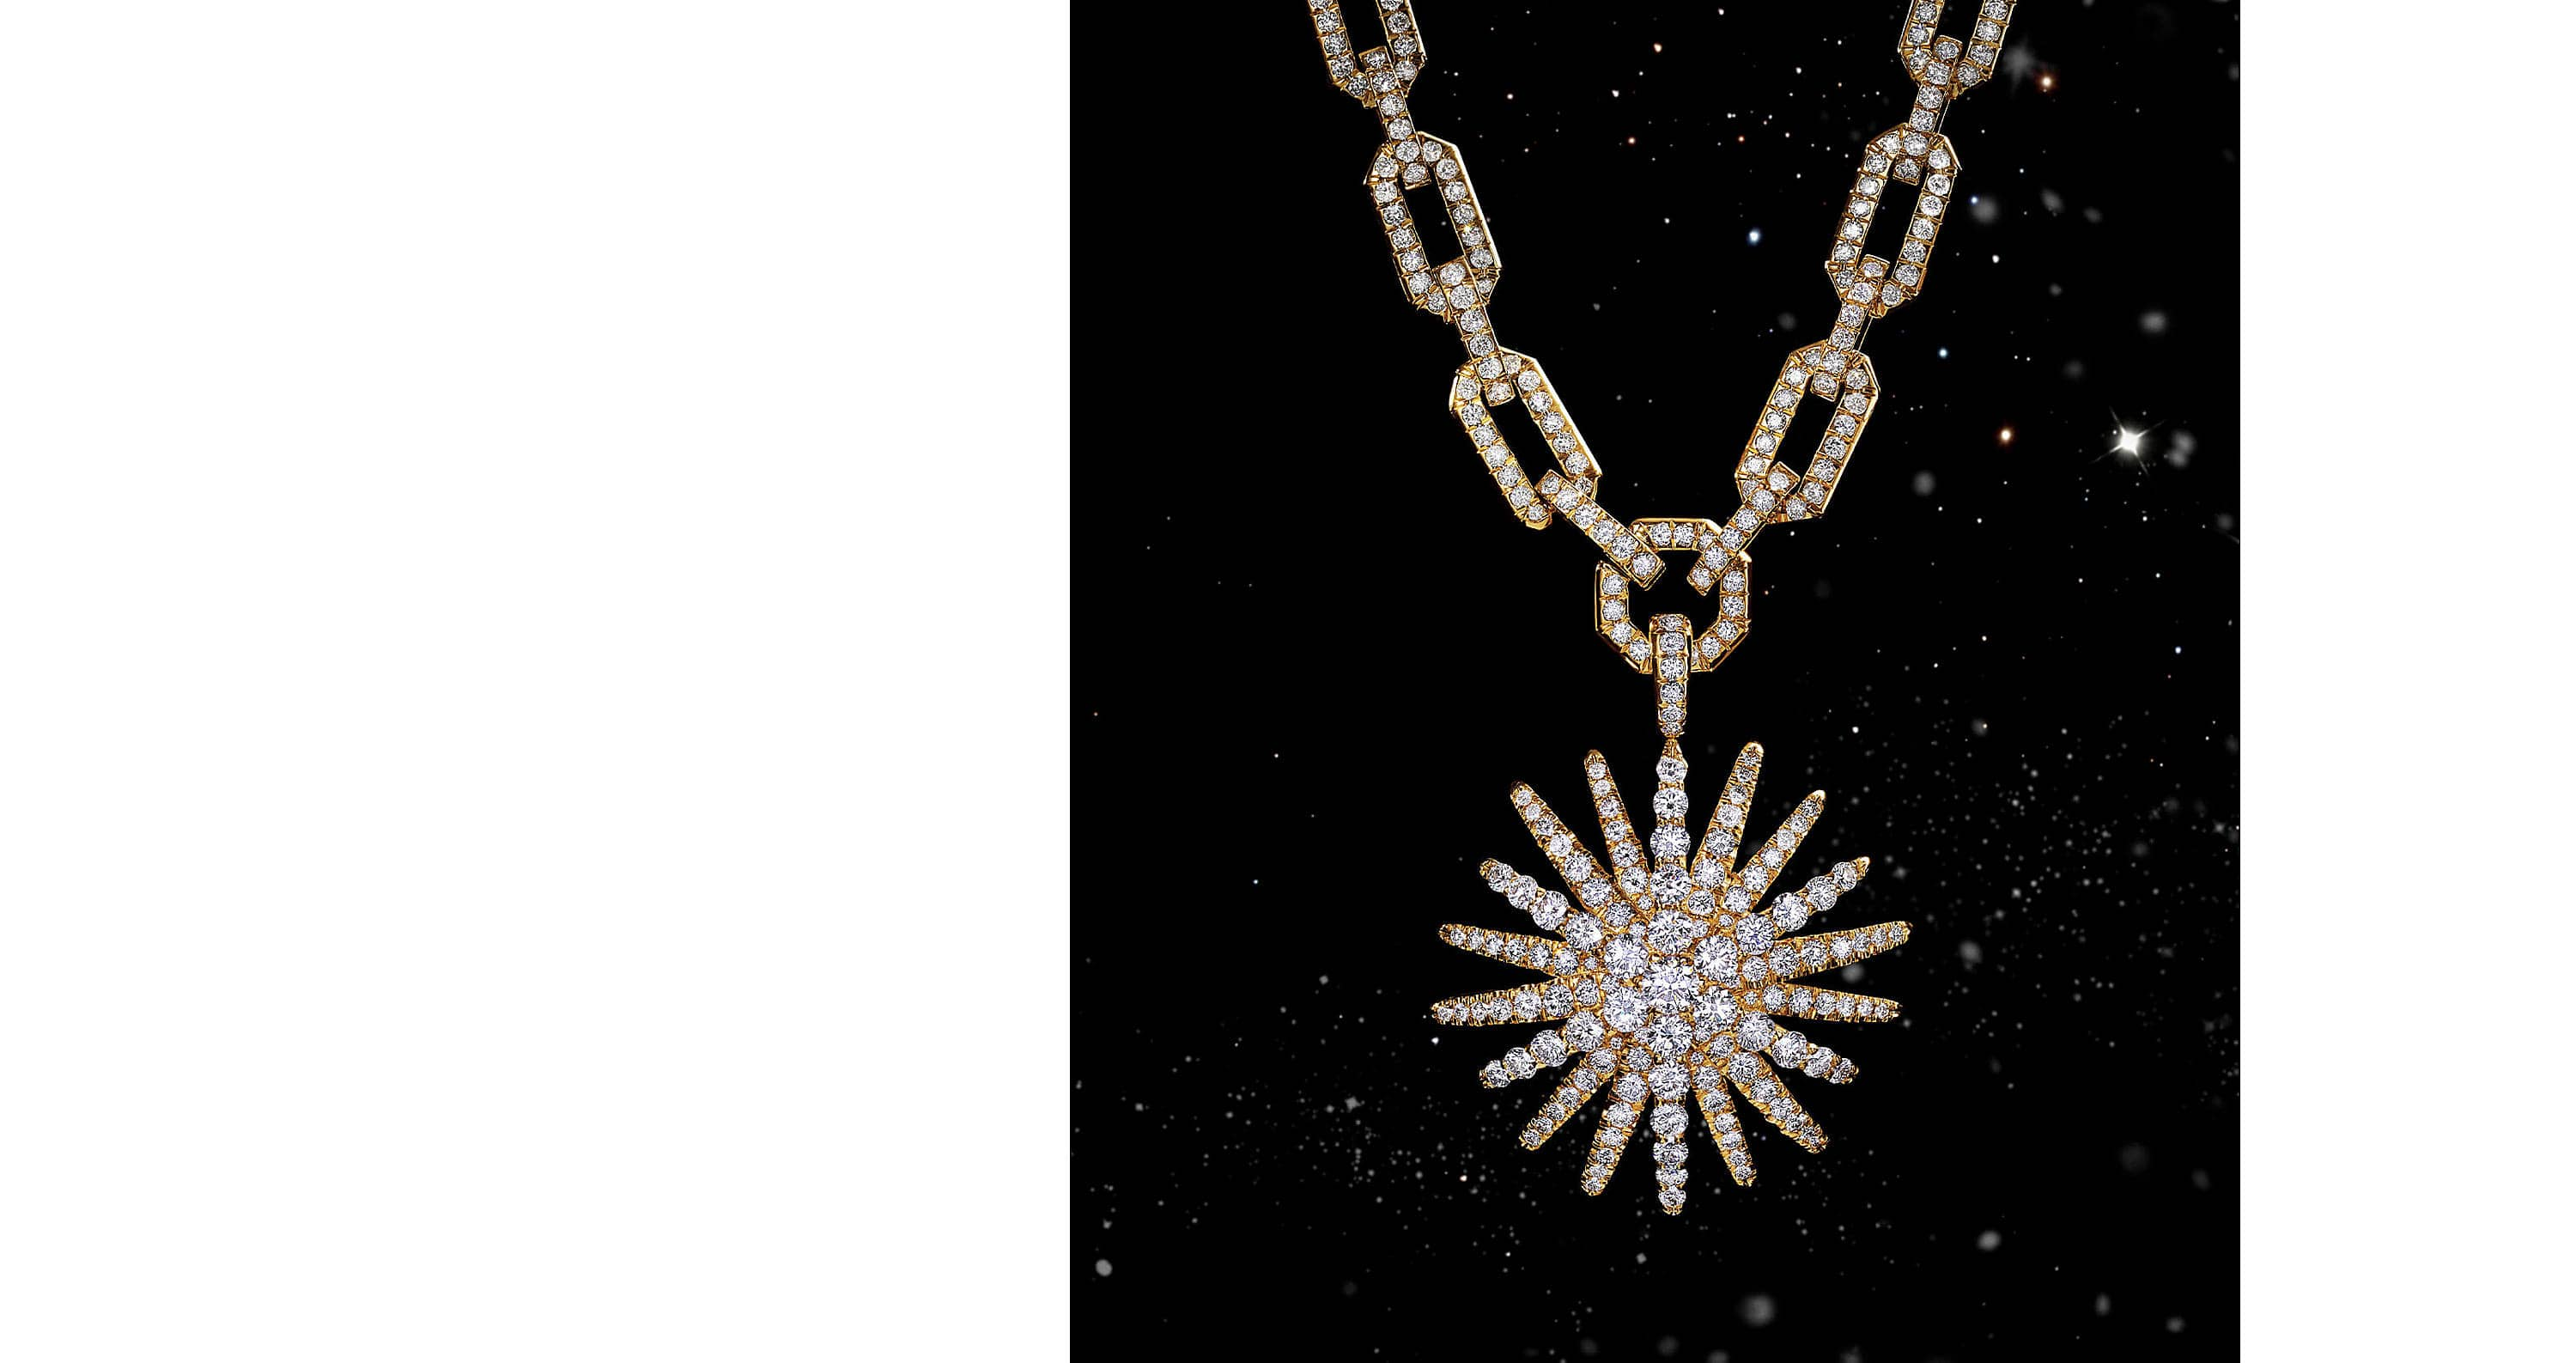 Inspired by bursts of light in the night sky, this magnificent pendant is hand set with 3.42 carats of diamonds using a mix of styles.